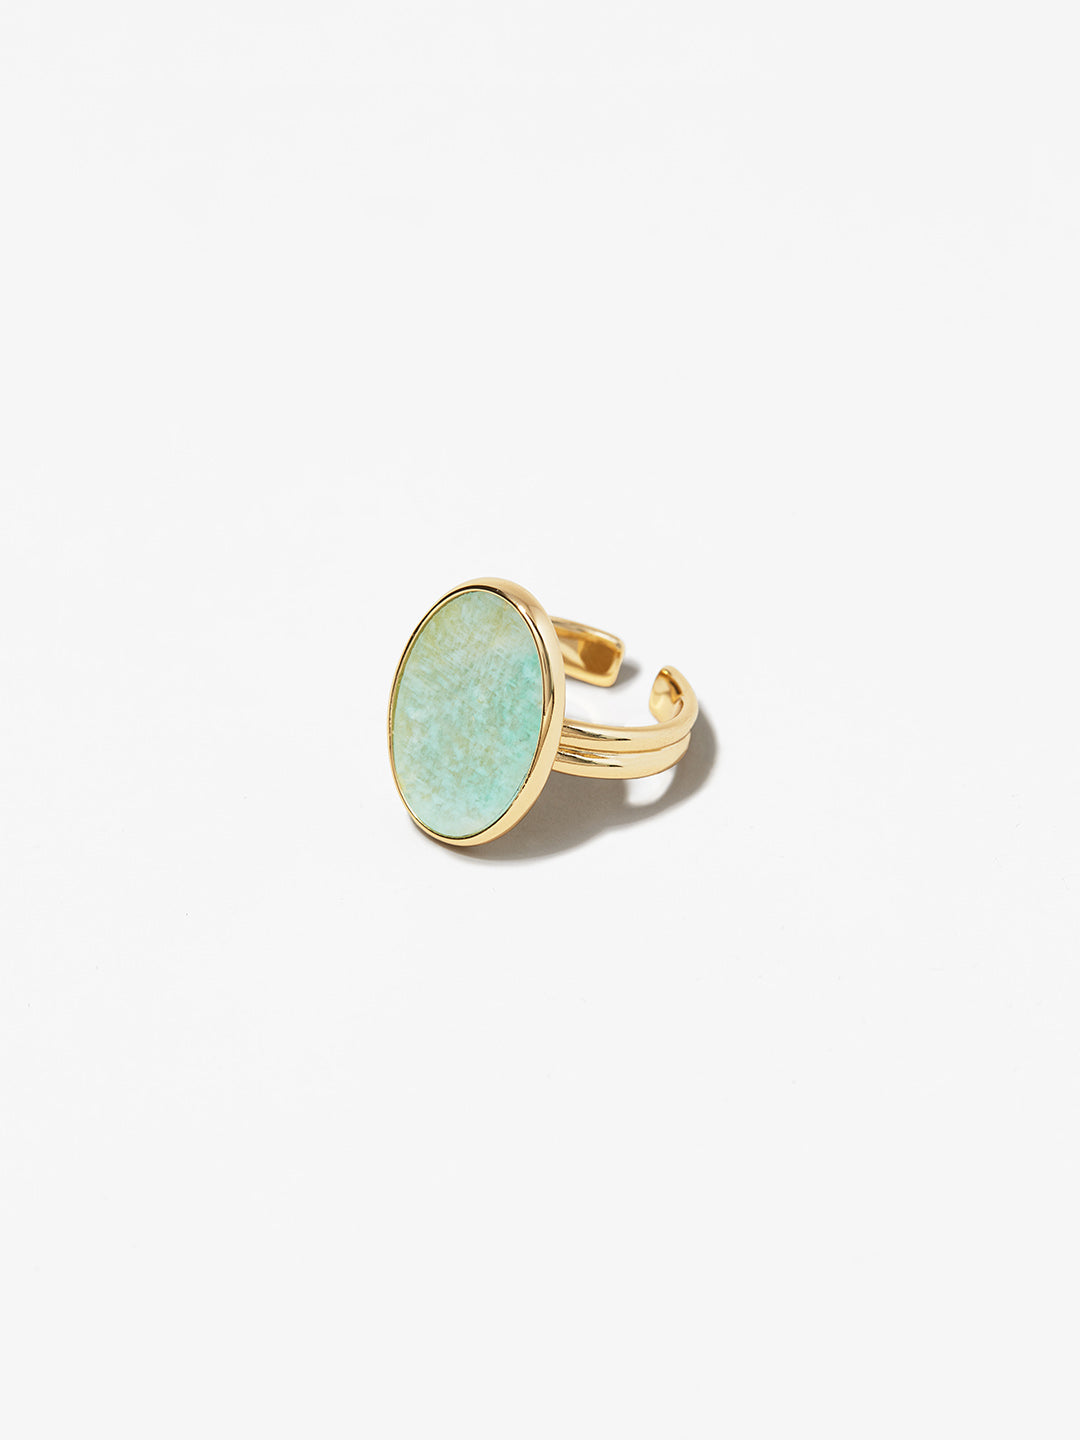 Ana Luisa Jewelry Rings Oval Stone Ring Mara Amazonite Gold